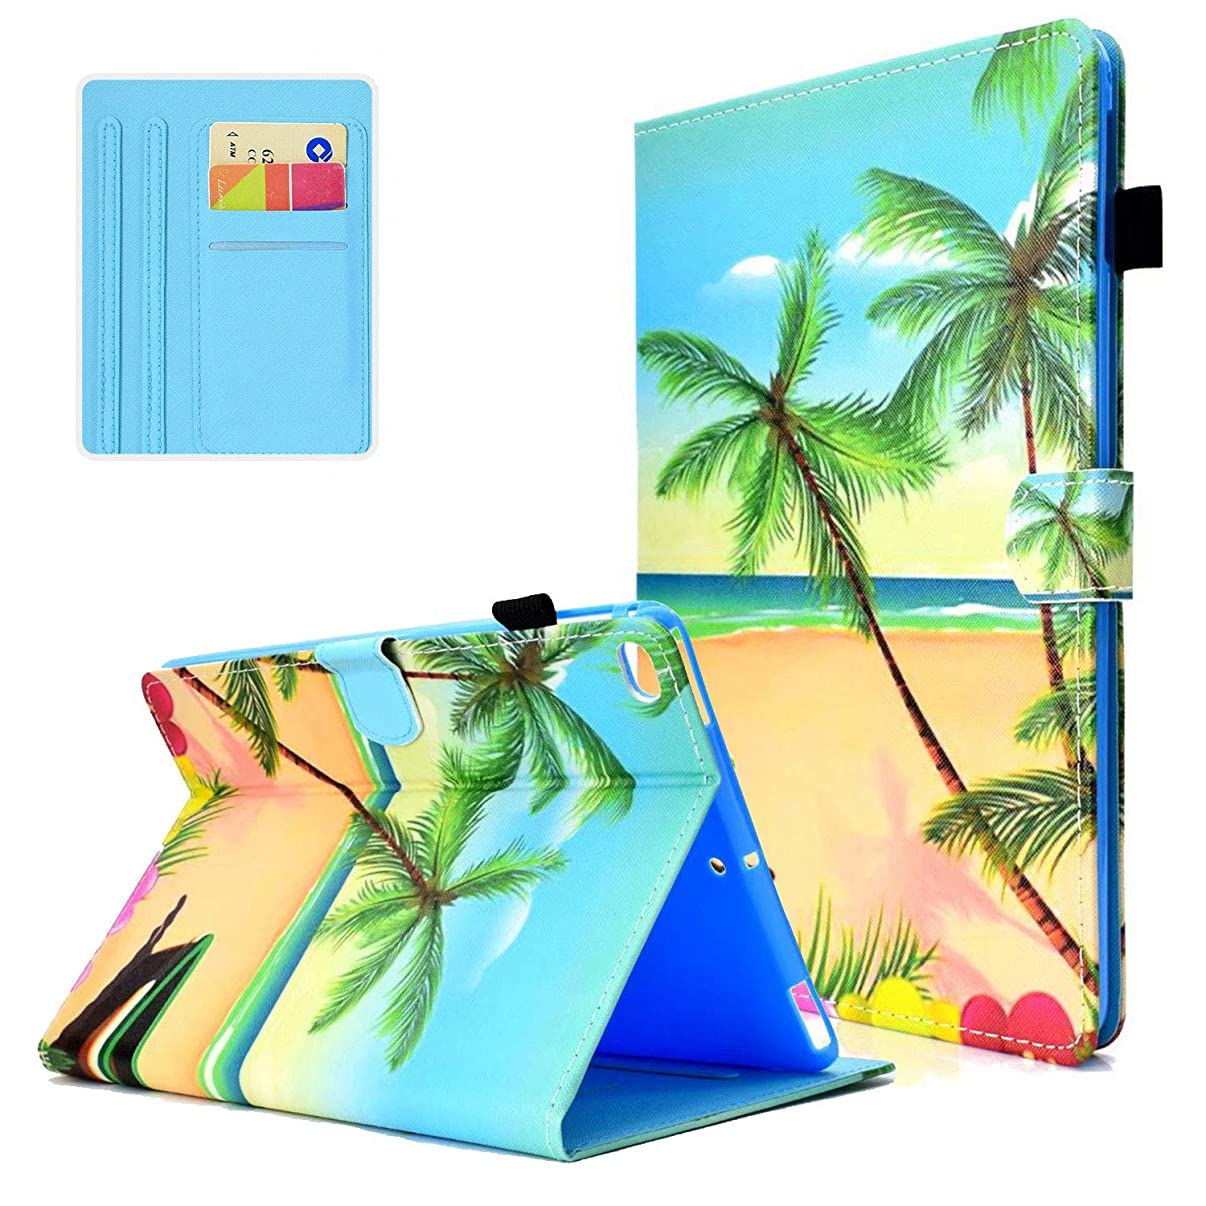 Case for New iPad 9.7 2018 2017, iPad Air 1 2,APOLL Book Style Full-Body Protective Slim Folio Stand Smart Wallet Case with Stylus Pen for Apple iPad 9.7 5th/6th Generation, iPad Air 1 2,Beach